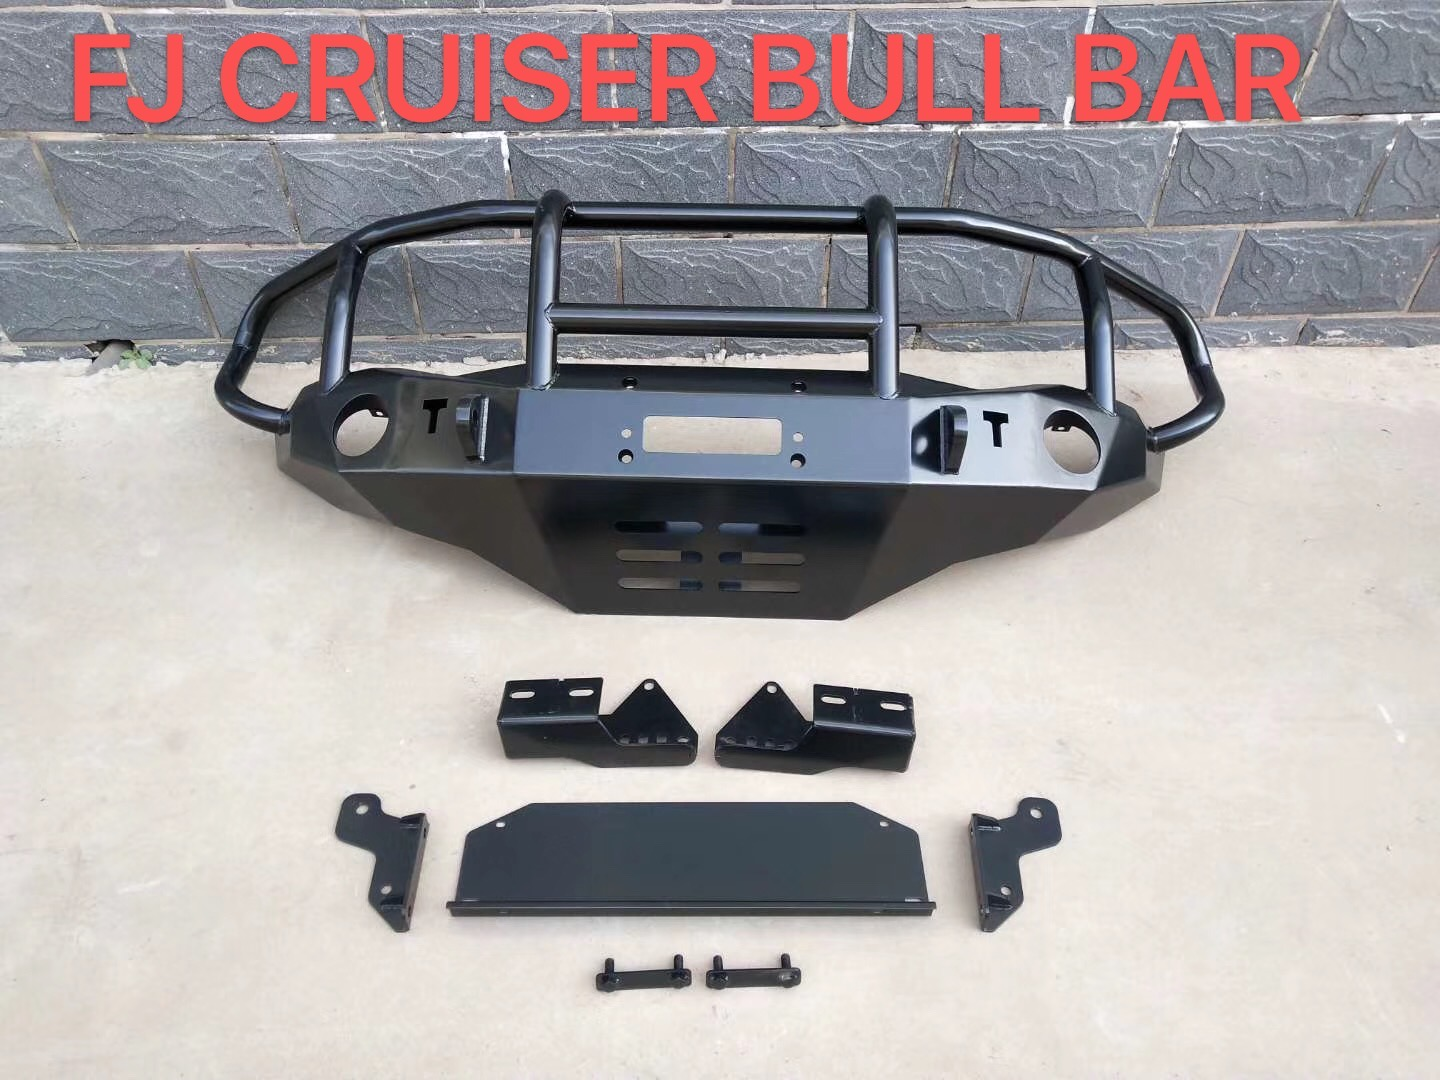 4×4 Toyota FJ Cruiser Steel Bull Bar Front Bumper with skid plate Featured Image